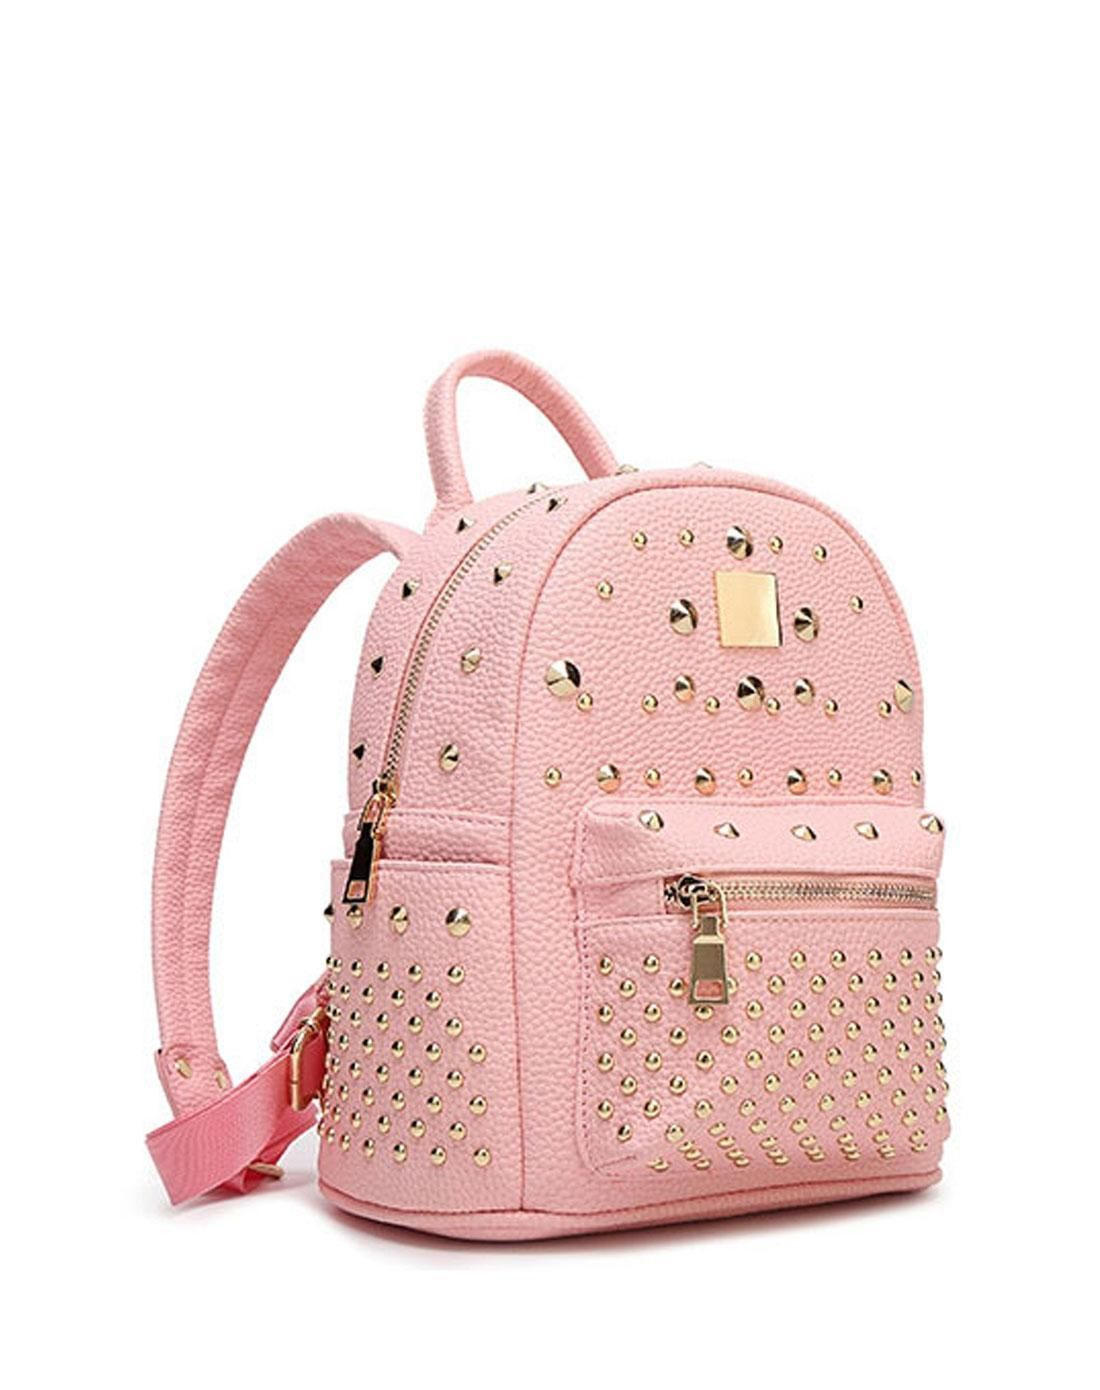 1894c986d120 ... ladies small backpack.  AdoreWe  VIPme (VIPSHOP Global)  SVMONO❤️Designer Accessories Pink School Bags Backpacks for College Girls -  AdoreWe.com